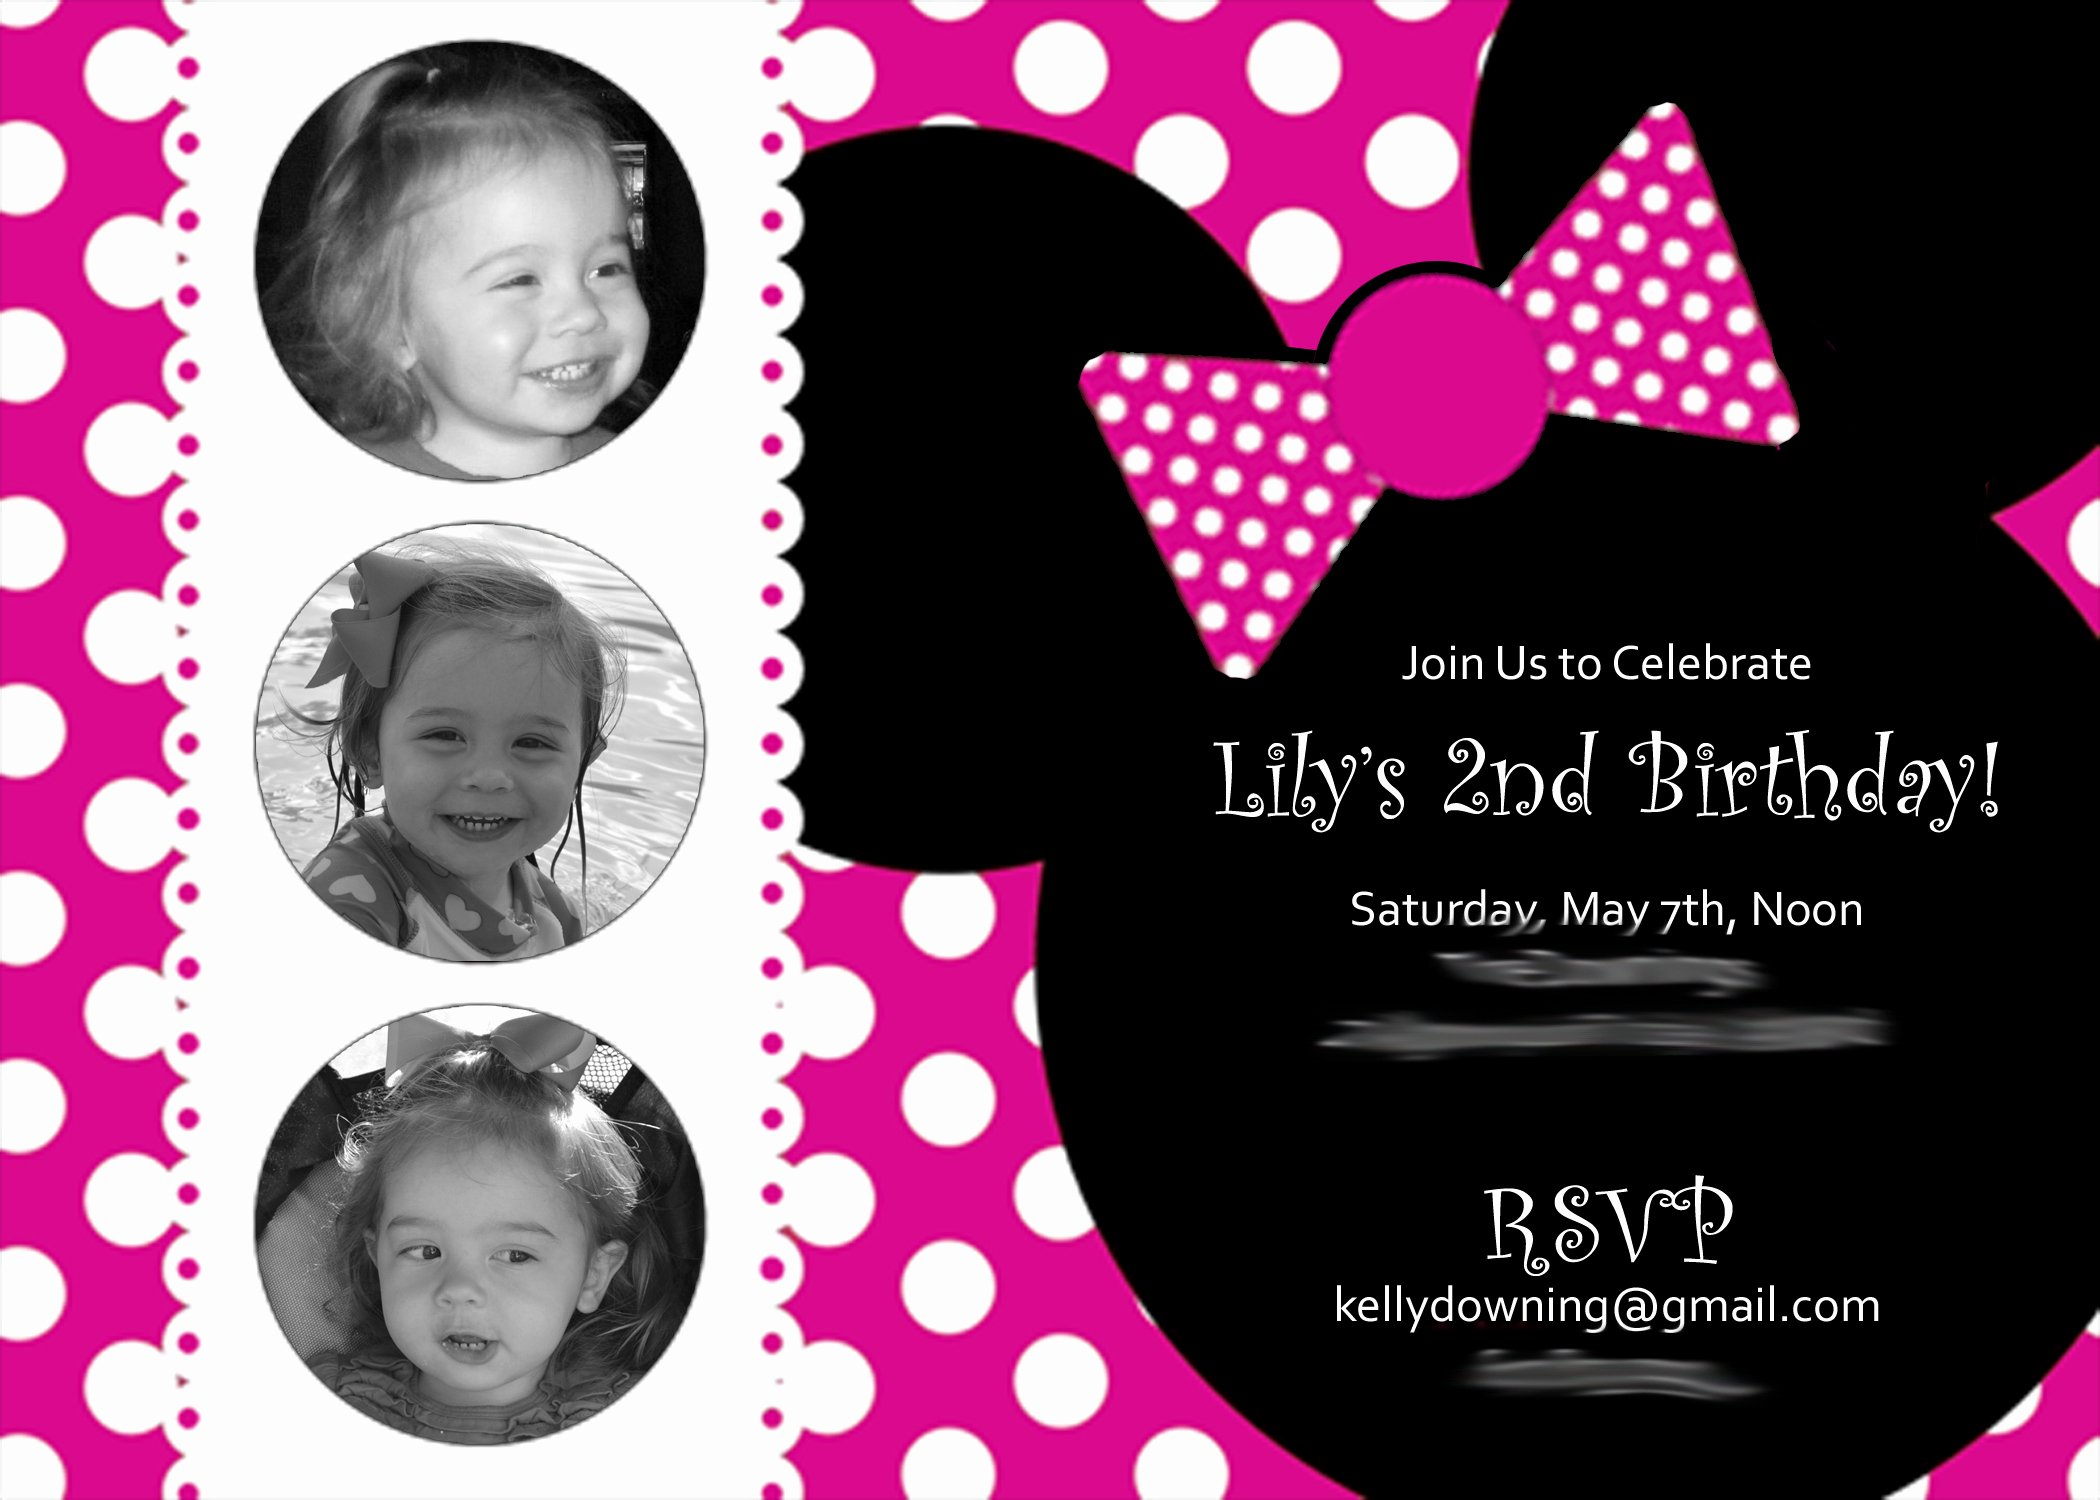 Minnie Mouse Party Invitations Beautiful A Two Year's Olds Mini Minnie Birthday Party